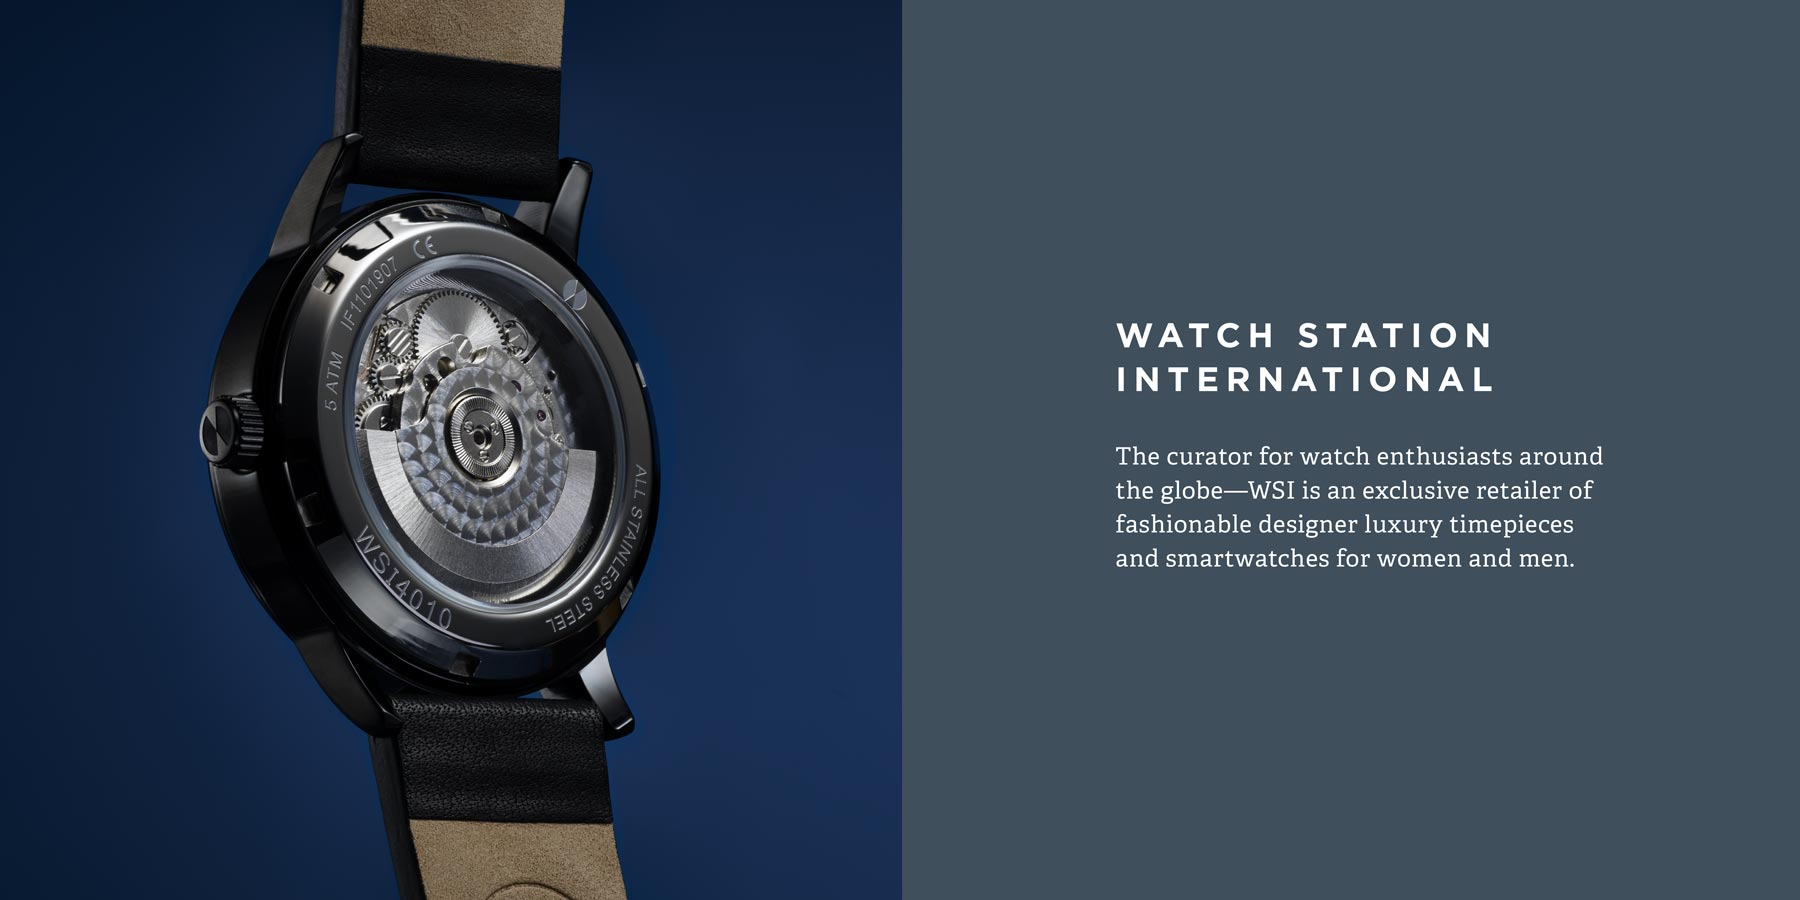 The curator for watch enthusiasts around the globe—WSI is an exclusive retailer of fashionable designer luxury timepieces and smartwatches for women and men.